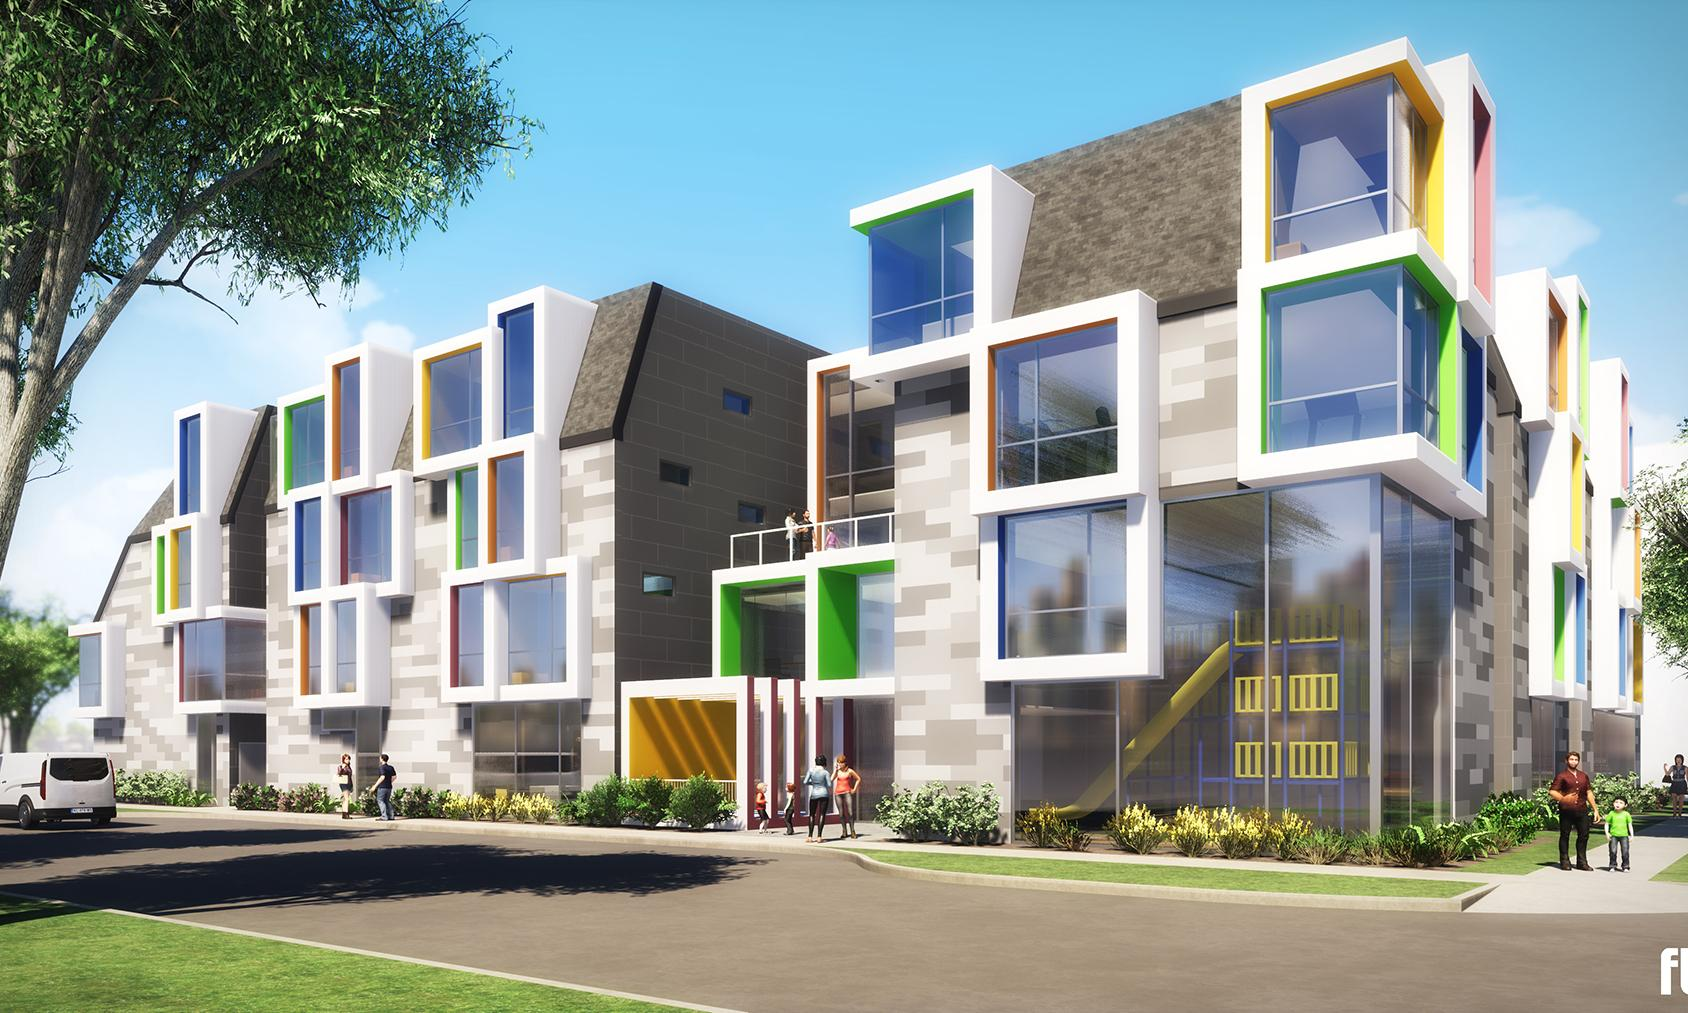 Ronald McDonald House. Rendering of the new three-storey building with floor-to-ceiling colourful windows as a focal point.